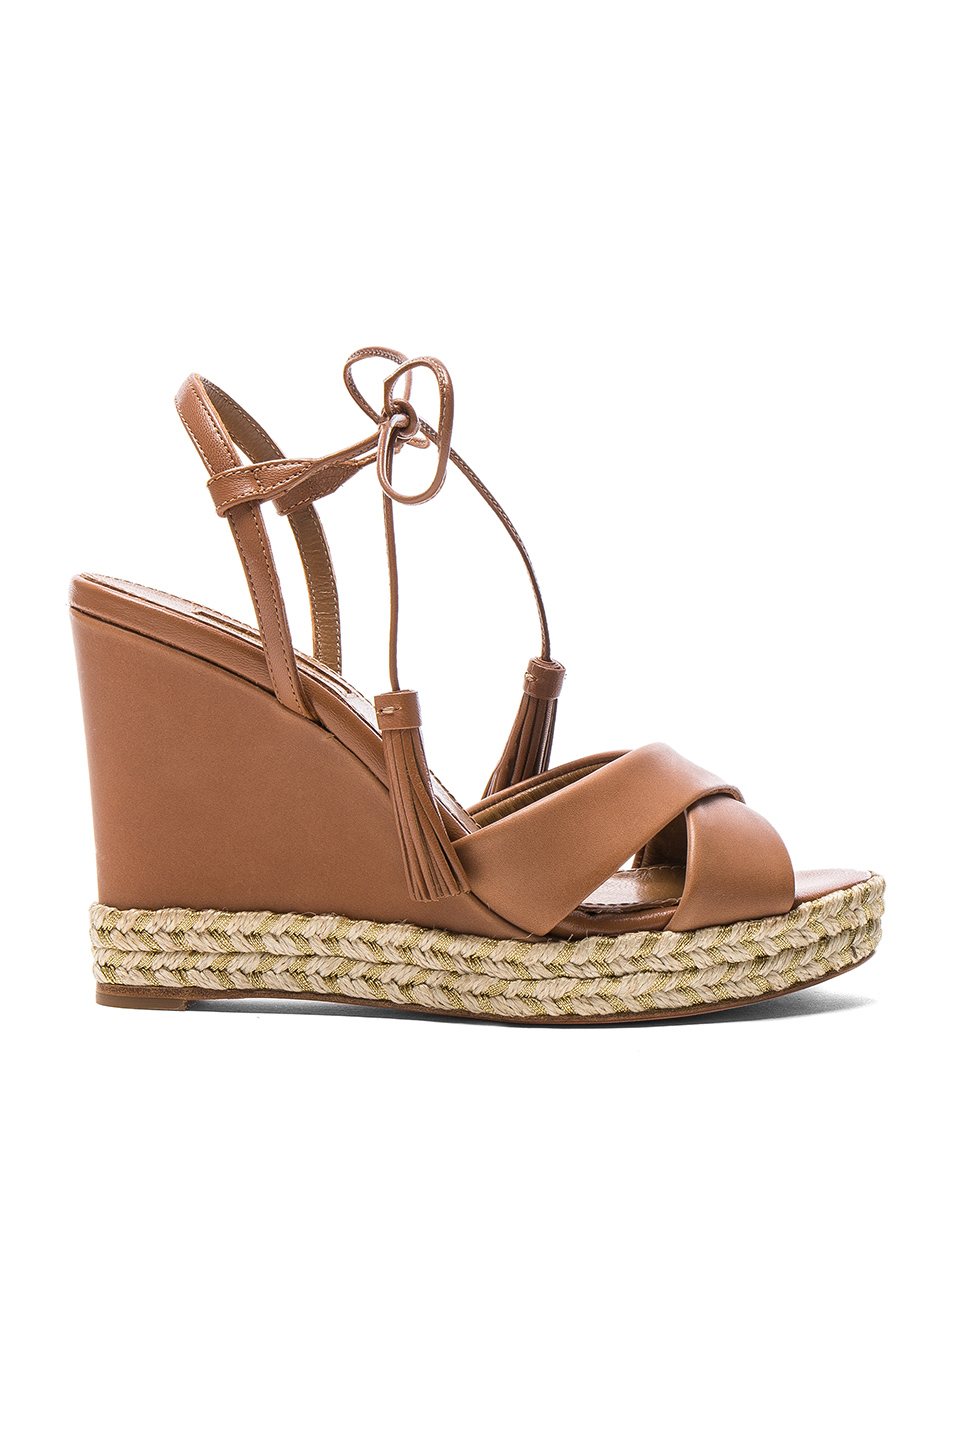 Aquazzura Leather Paraty Espadrille Wedges in Brown